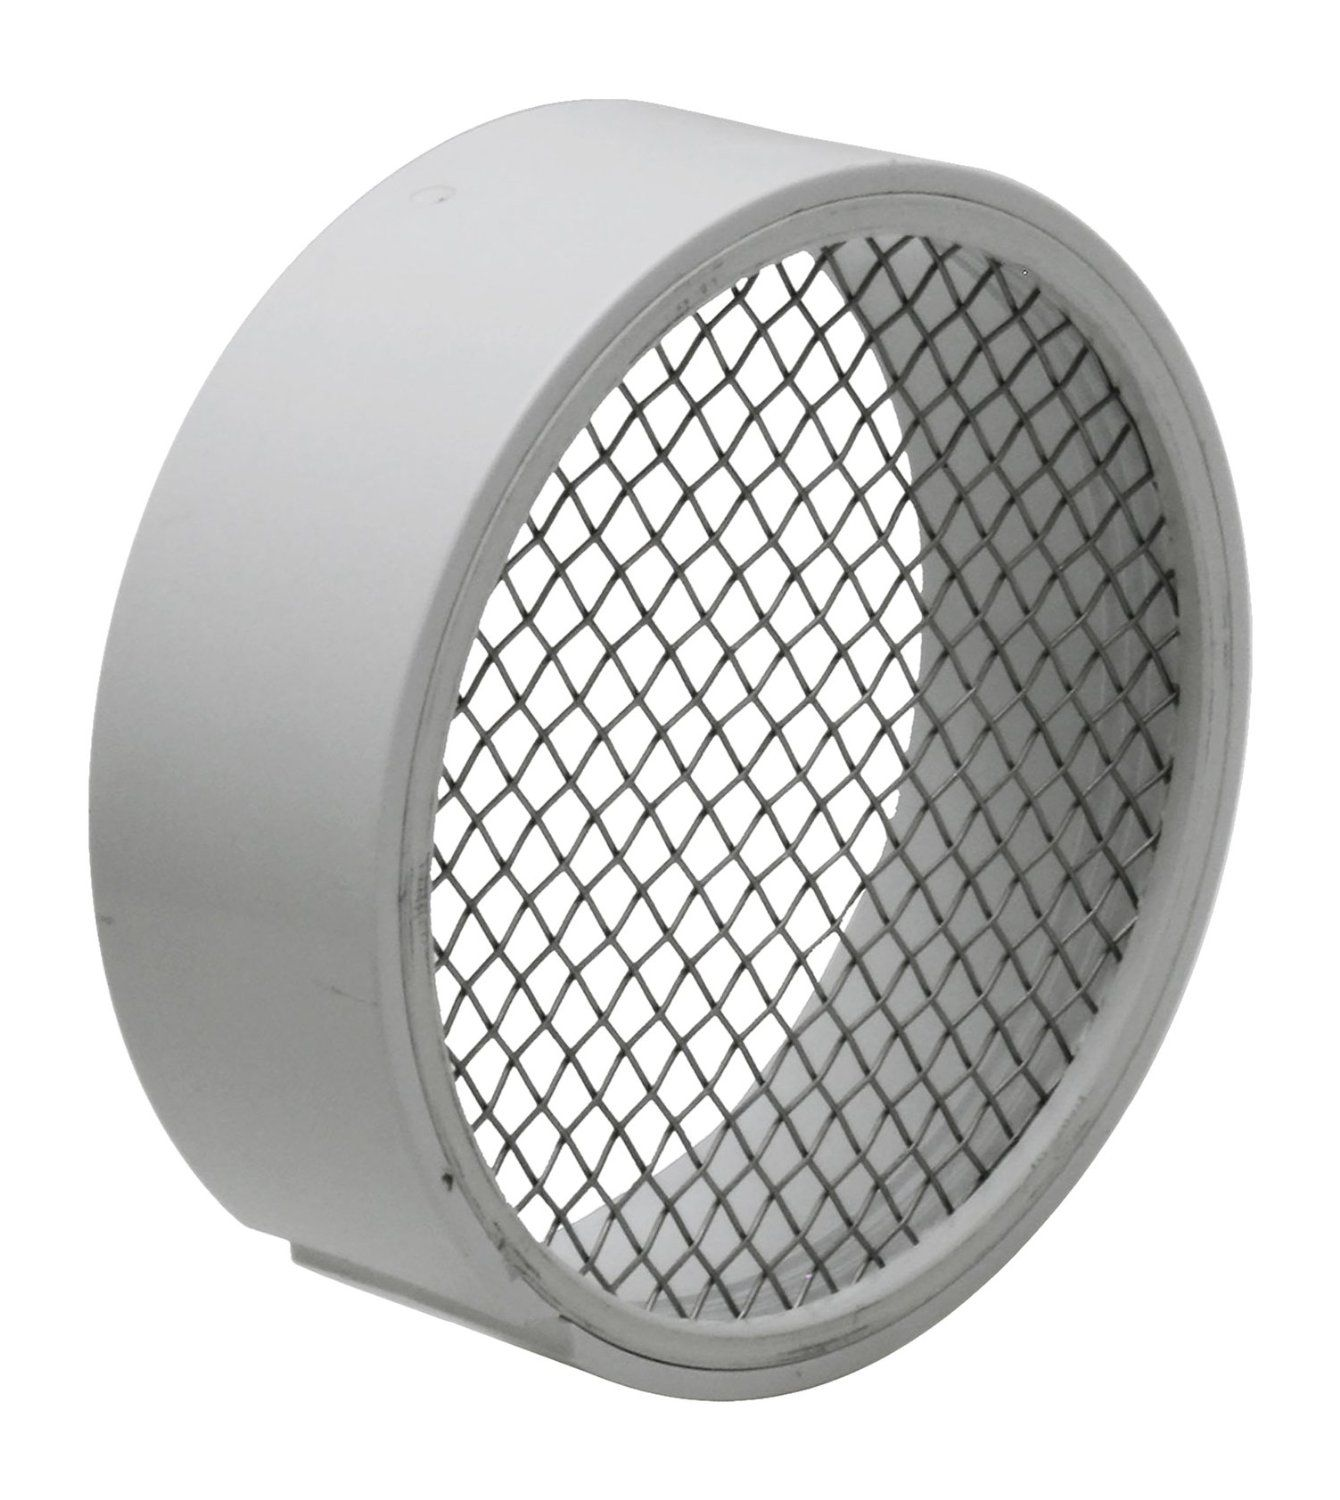 Raven Tvs2ss Pvc Termination Vent With Stainless Steel Screen 2 For More Information Visit Image Link Stainless Steel Screen Pvc Fittings Stainless